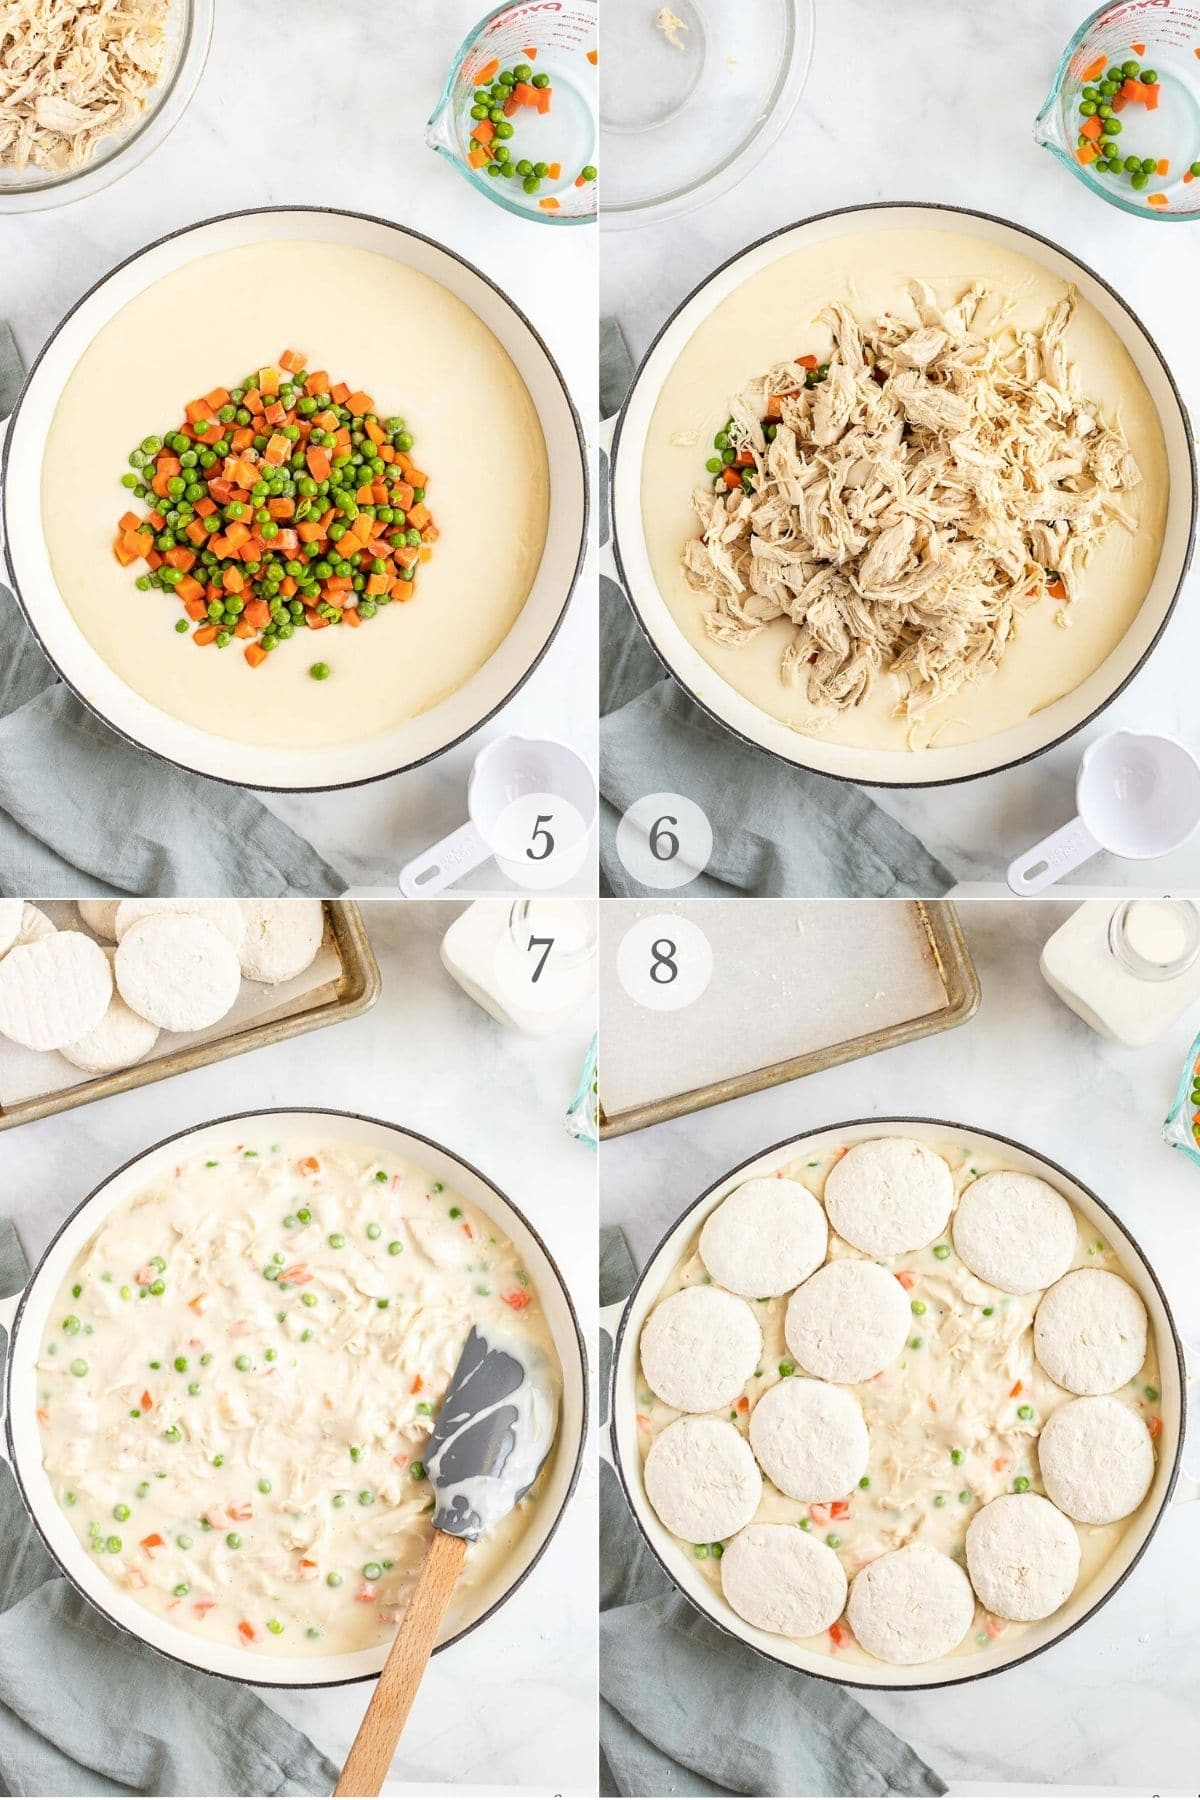 chicken and biscuits recipe steps 5-8